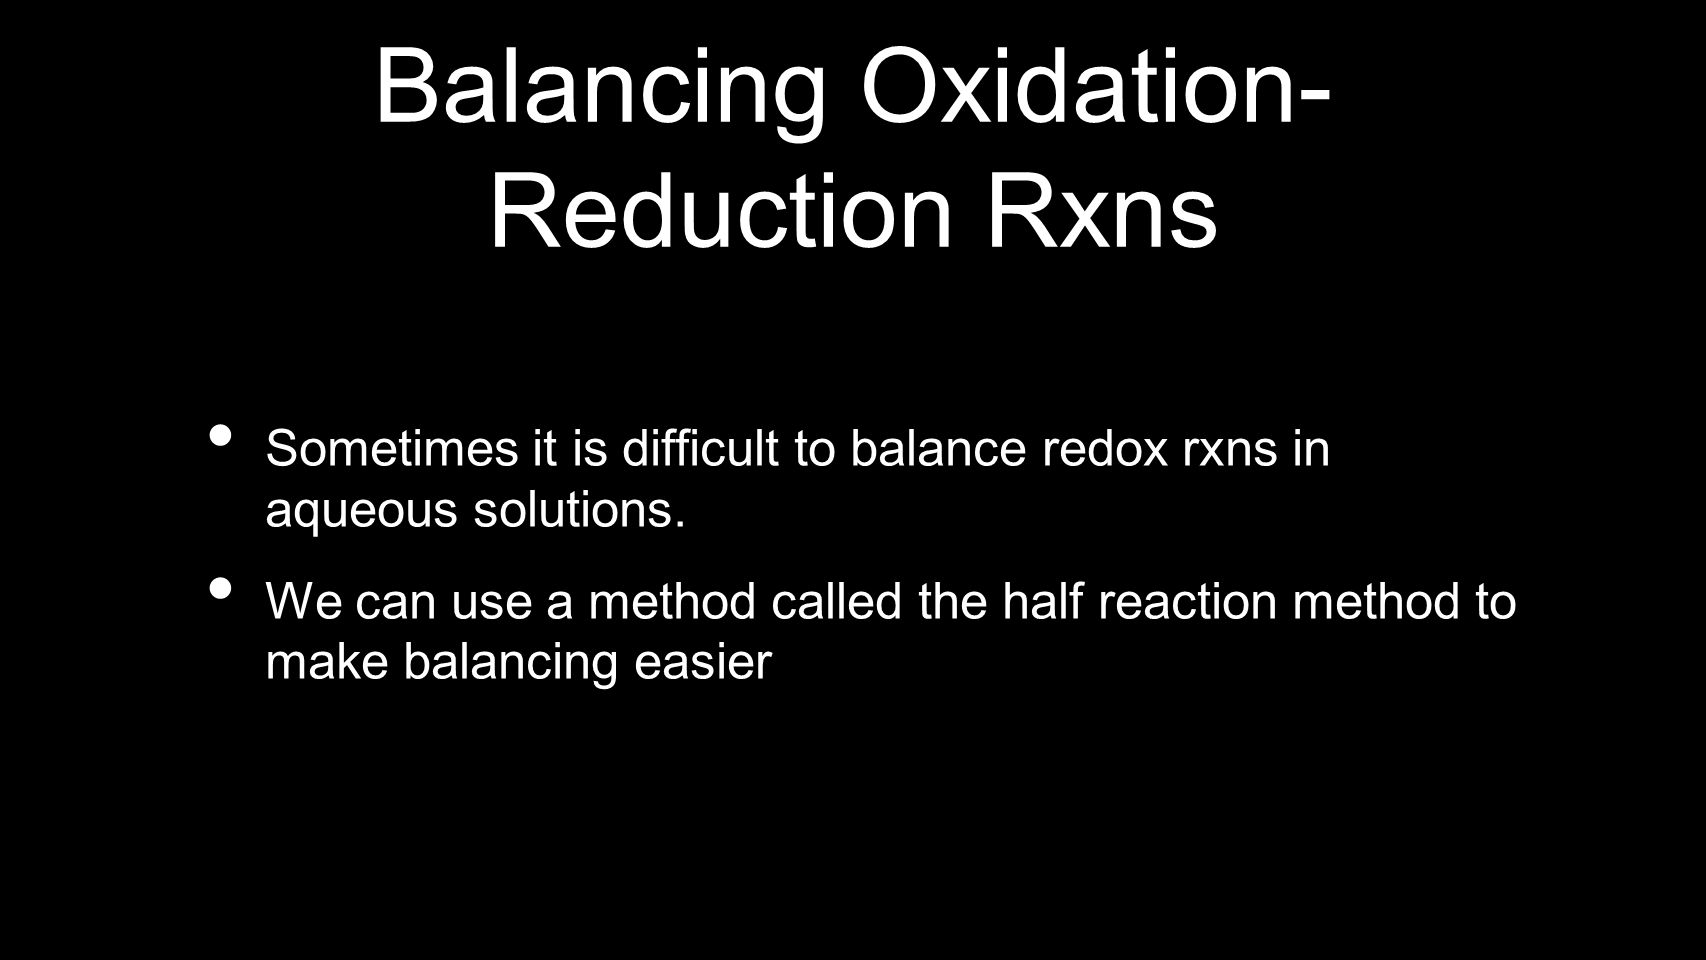 Balancing Oxidation-Reduction Rxns